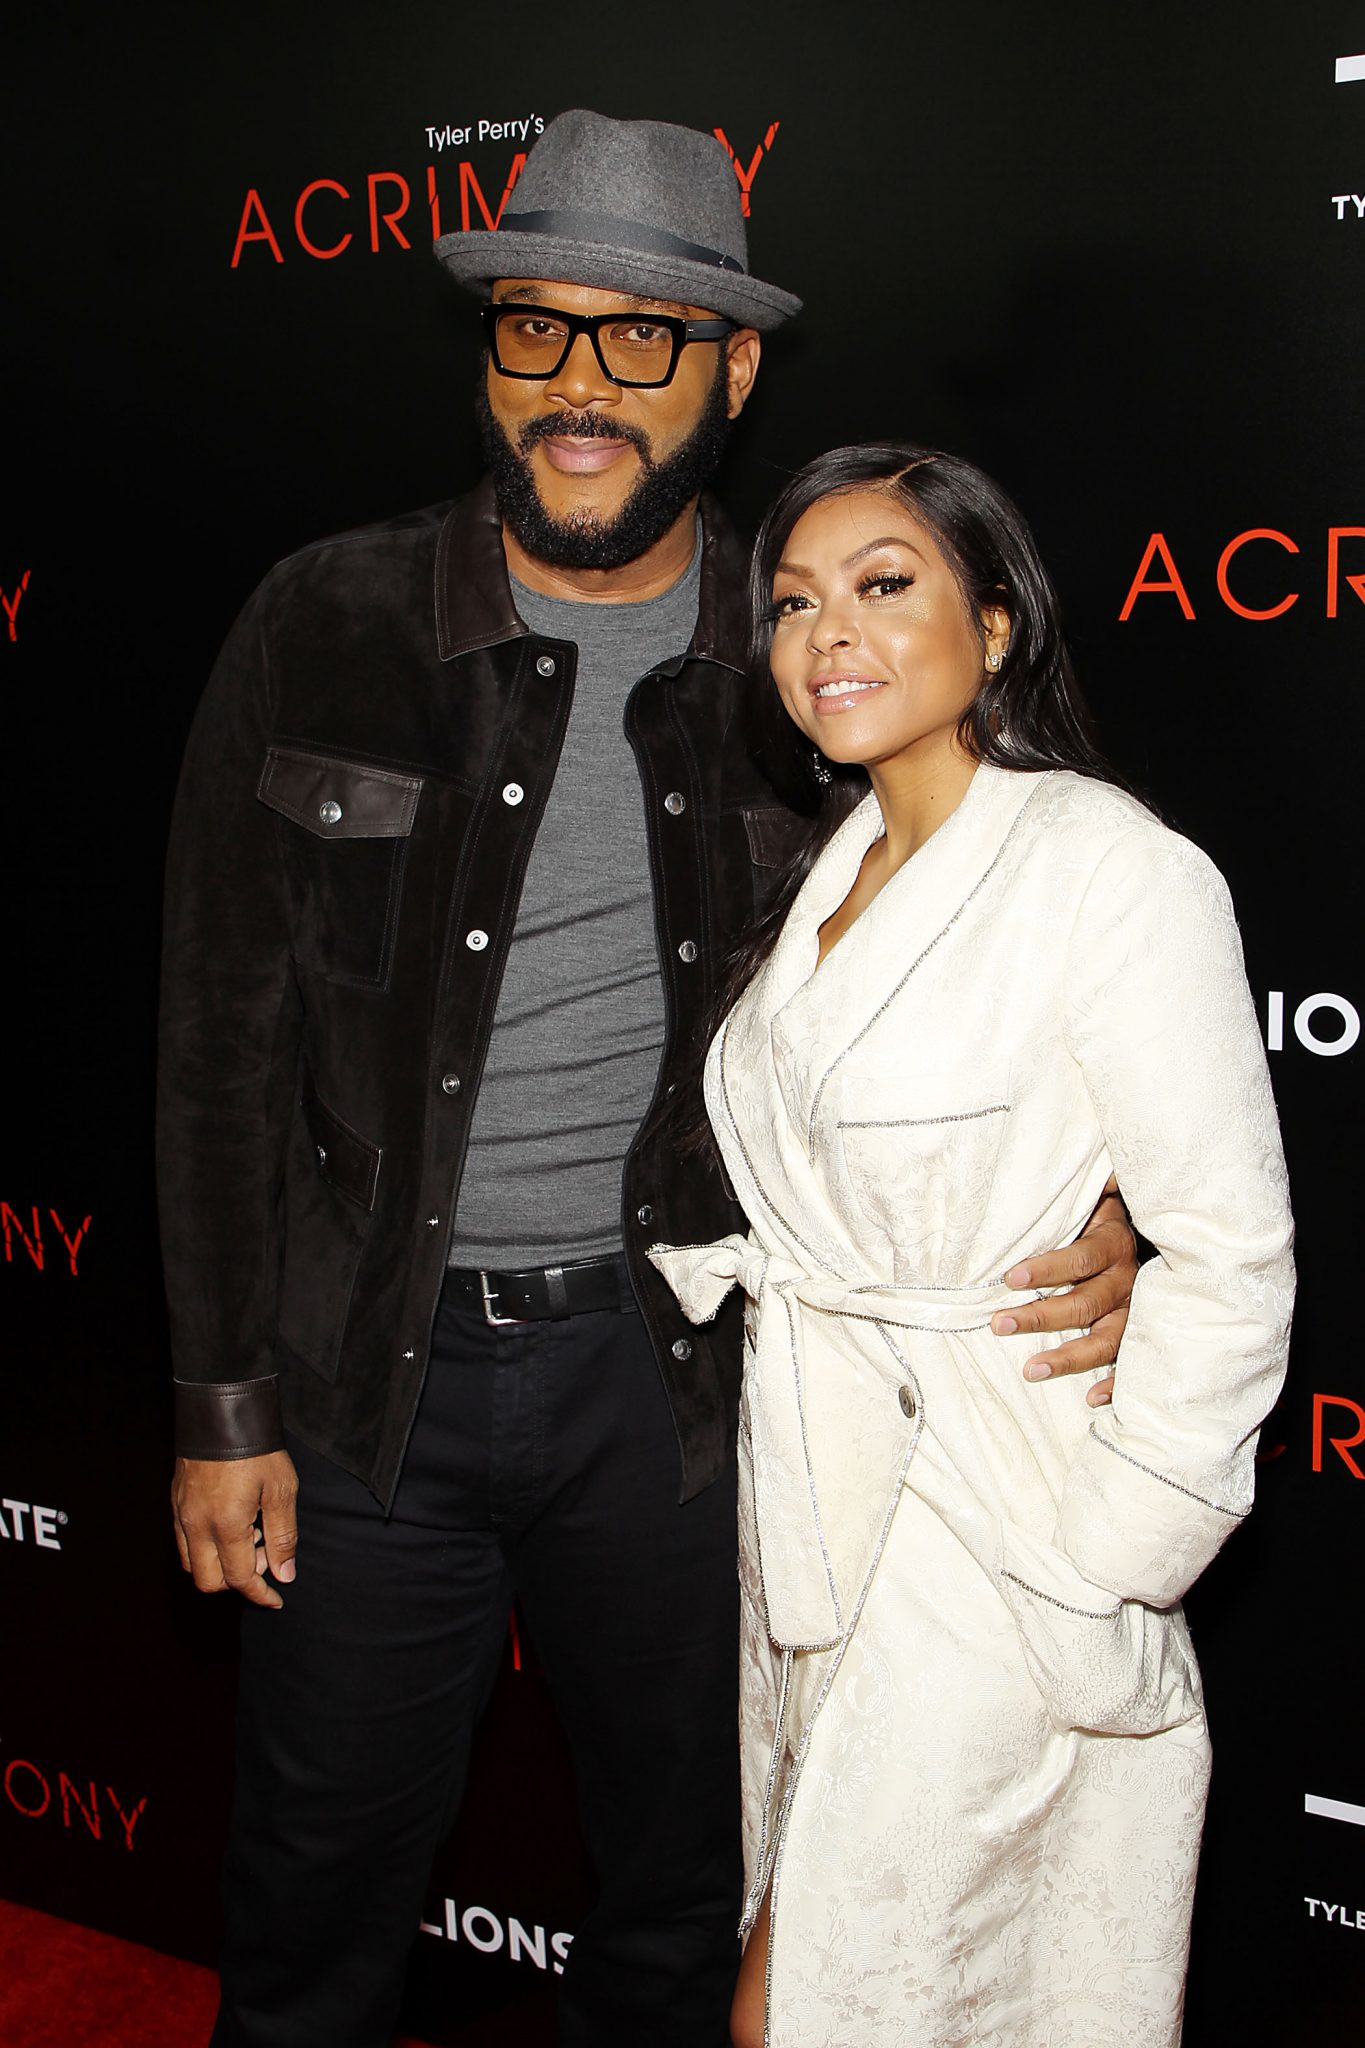 Tyler Perry's Acrimony World Premiere In NYC